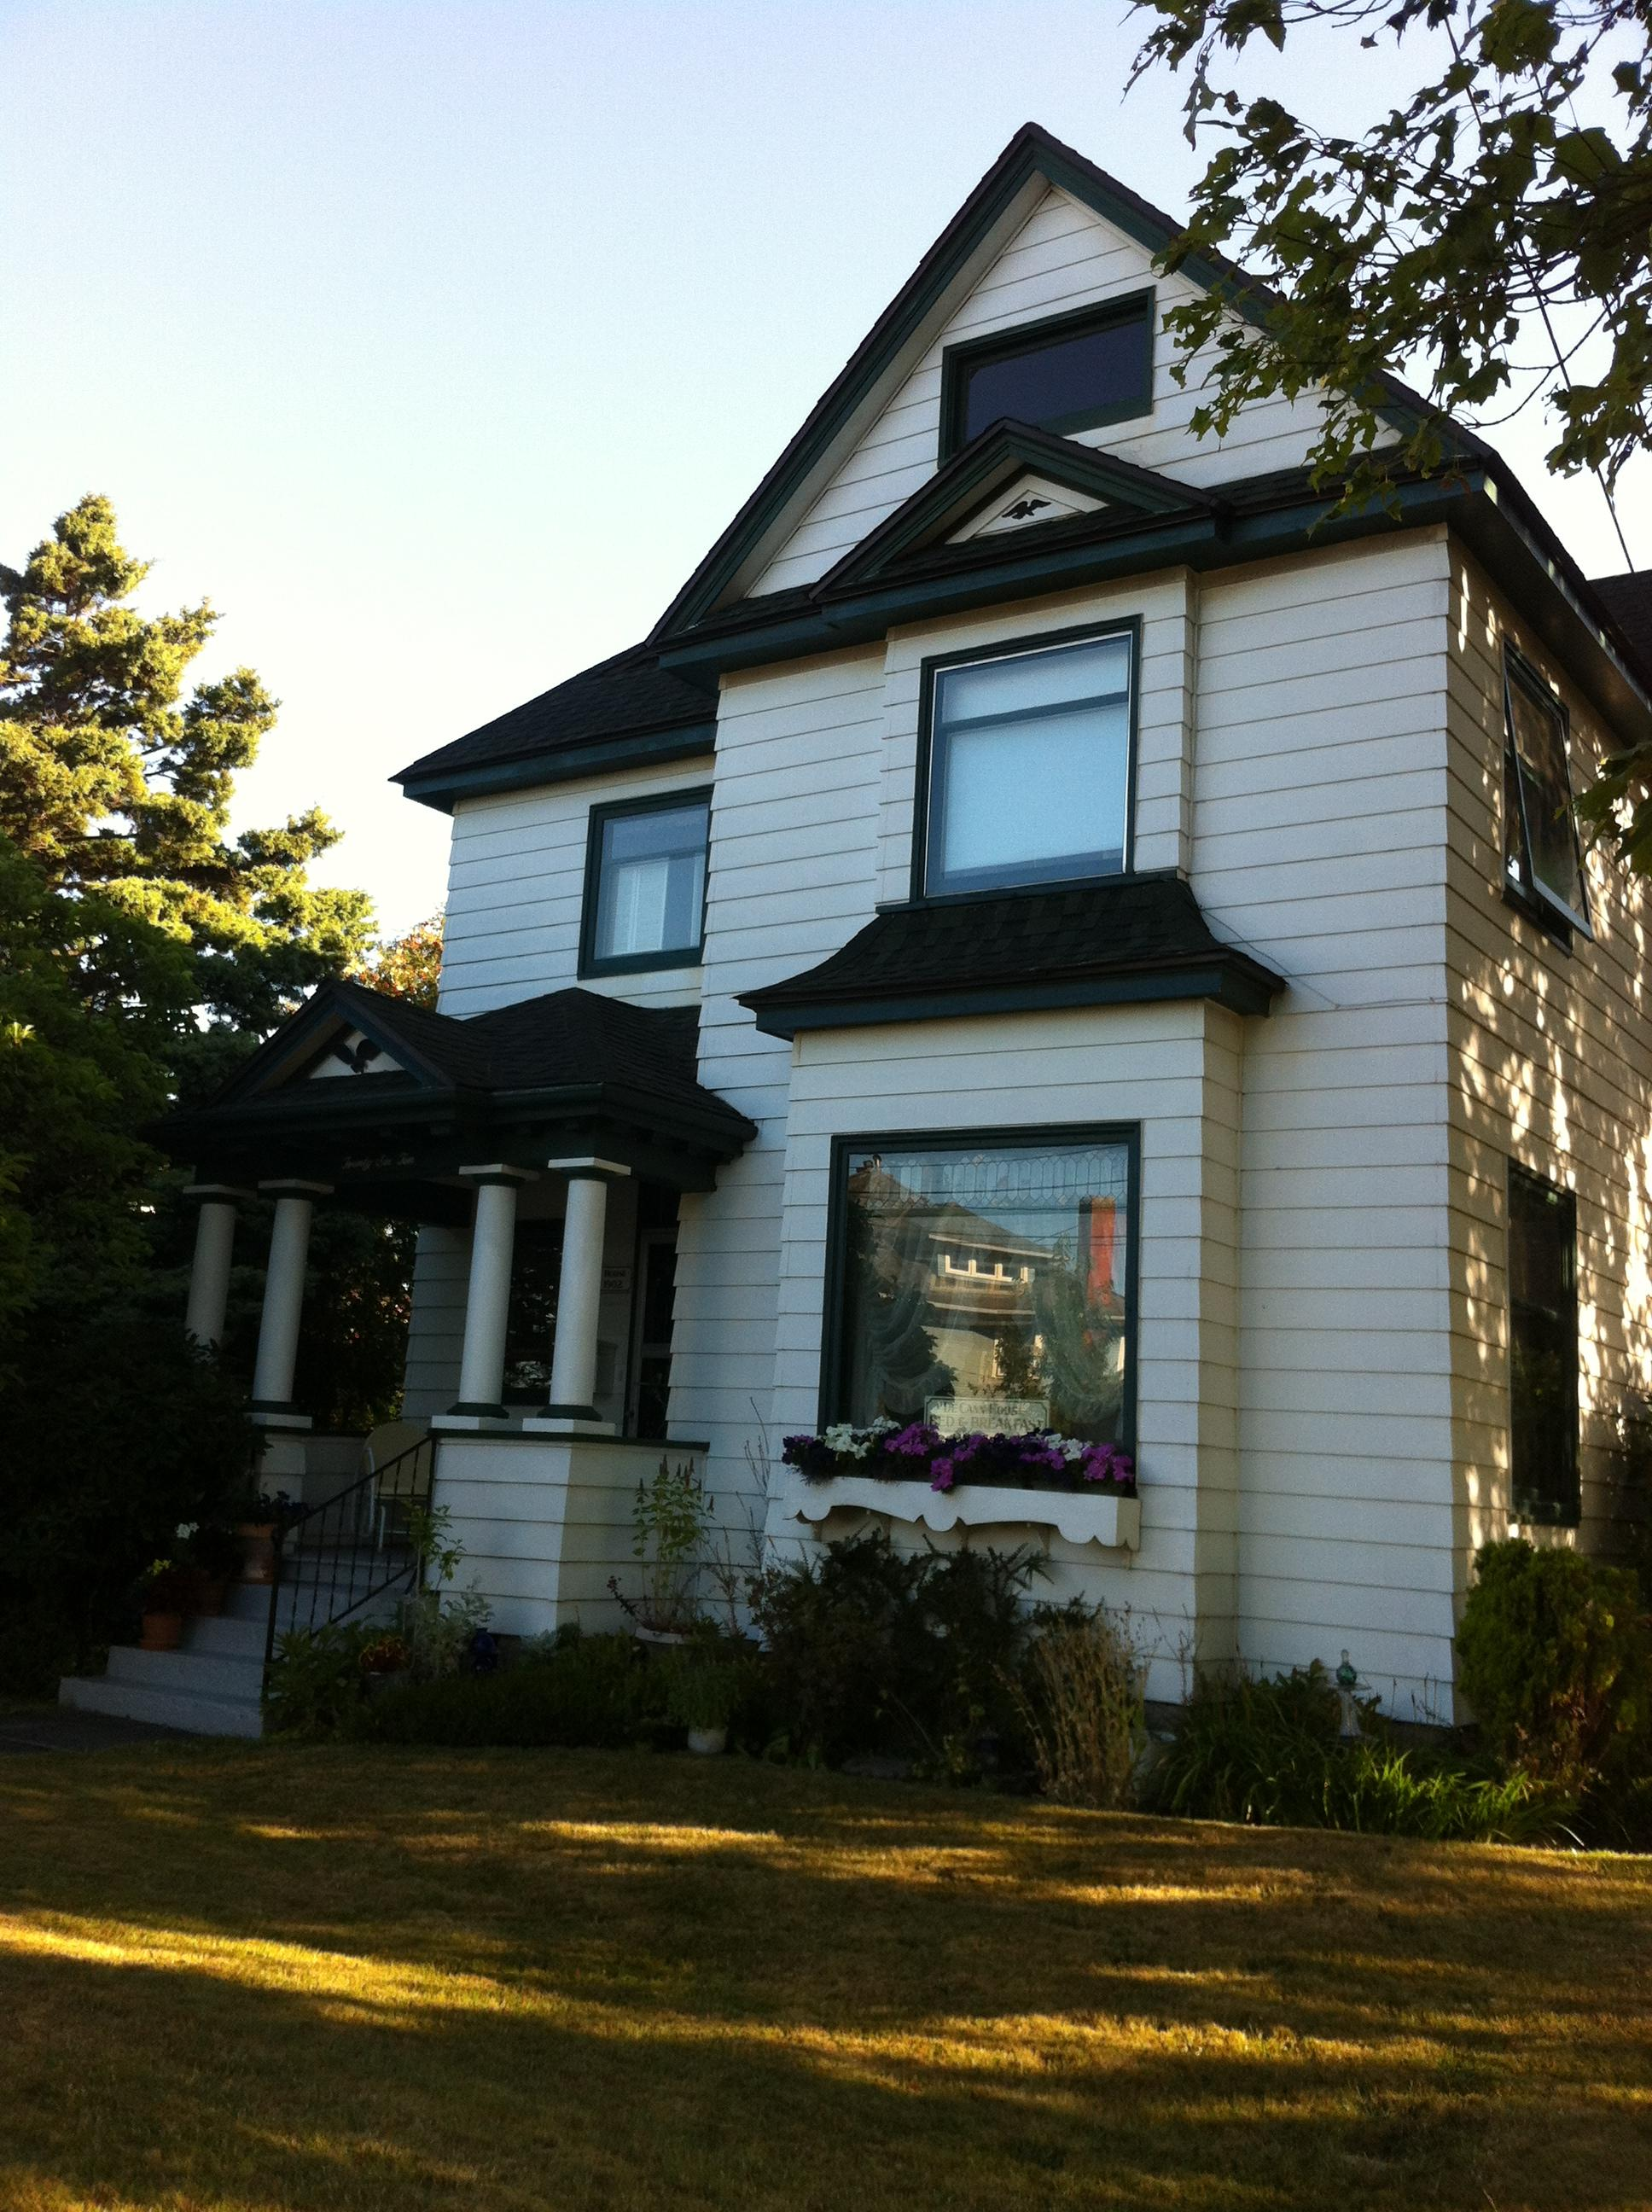 Bellingham's DeCann House Bed and Breakfast